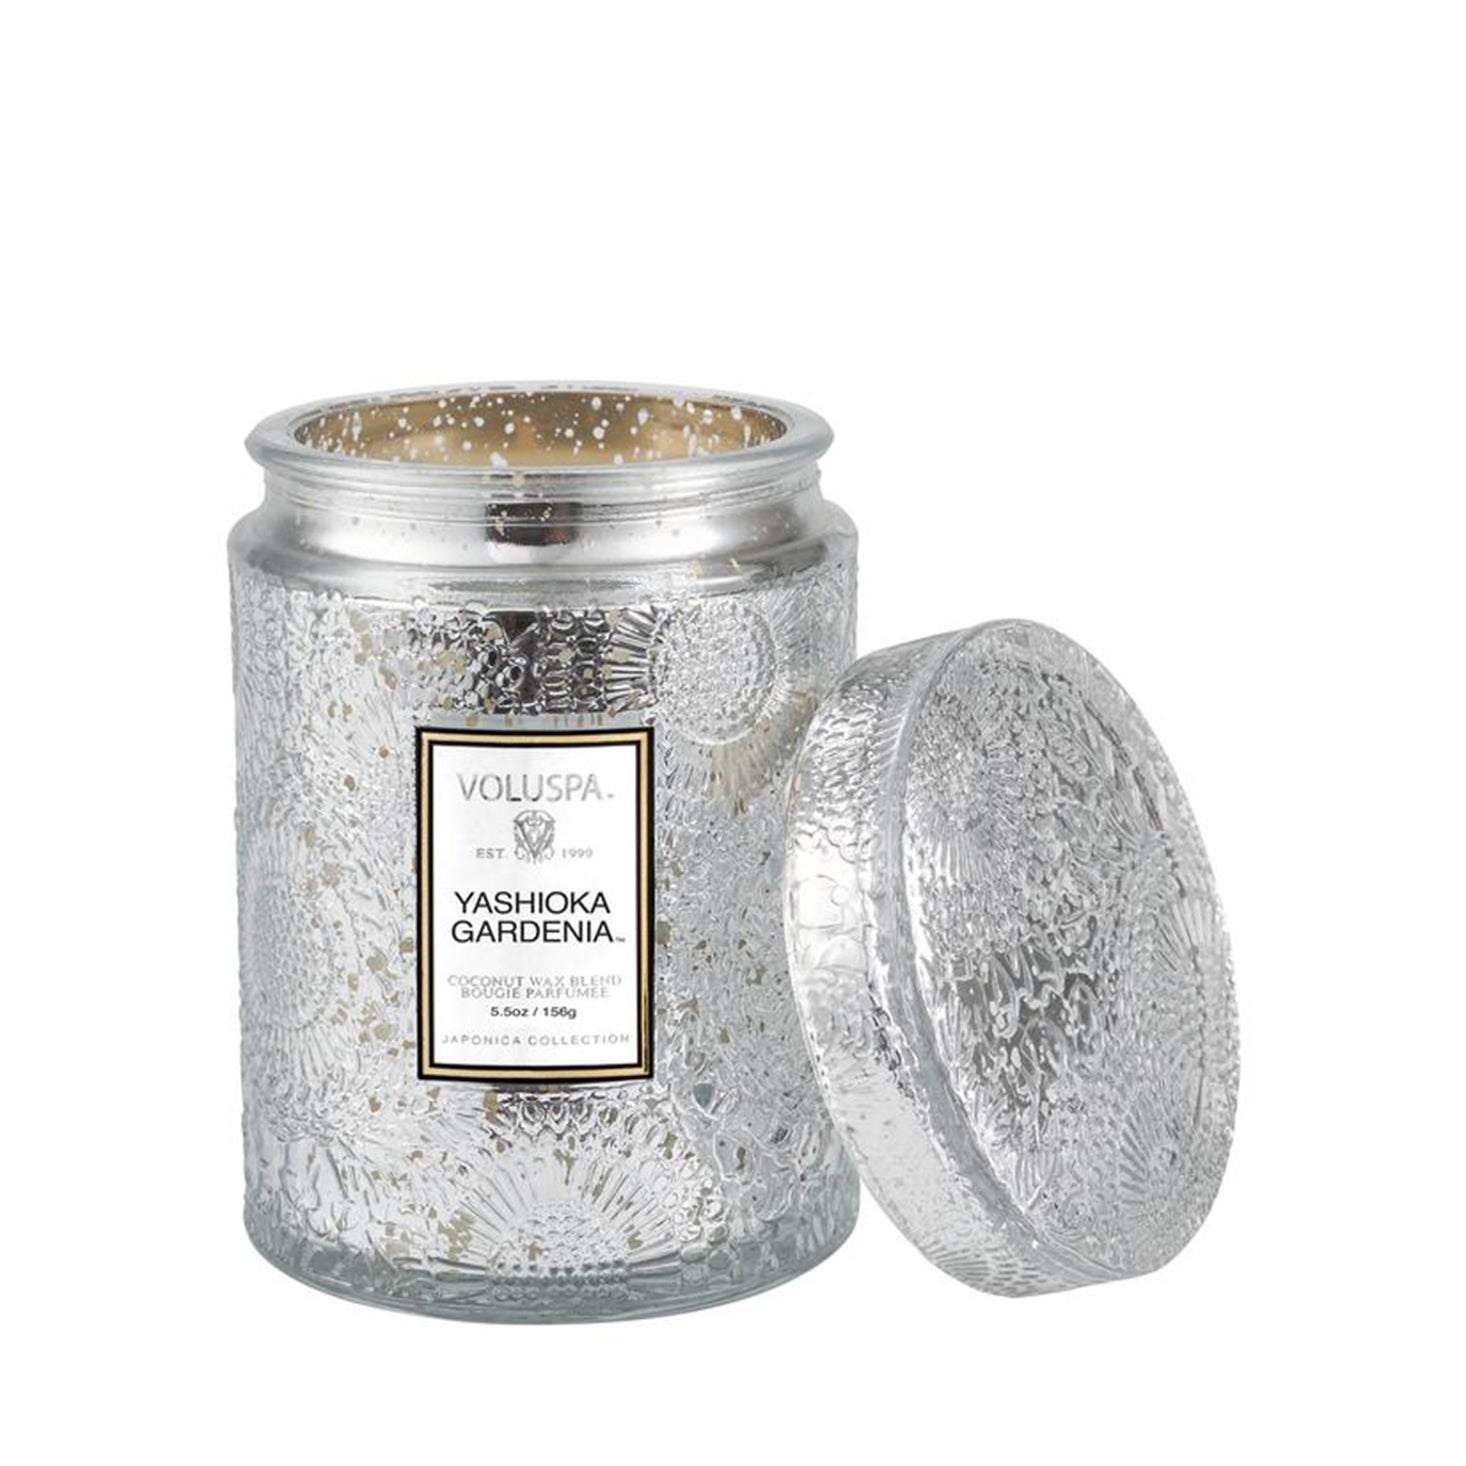 VOLUSPA Yashioka Gardenia 50hr Candle Jar